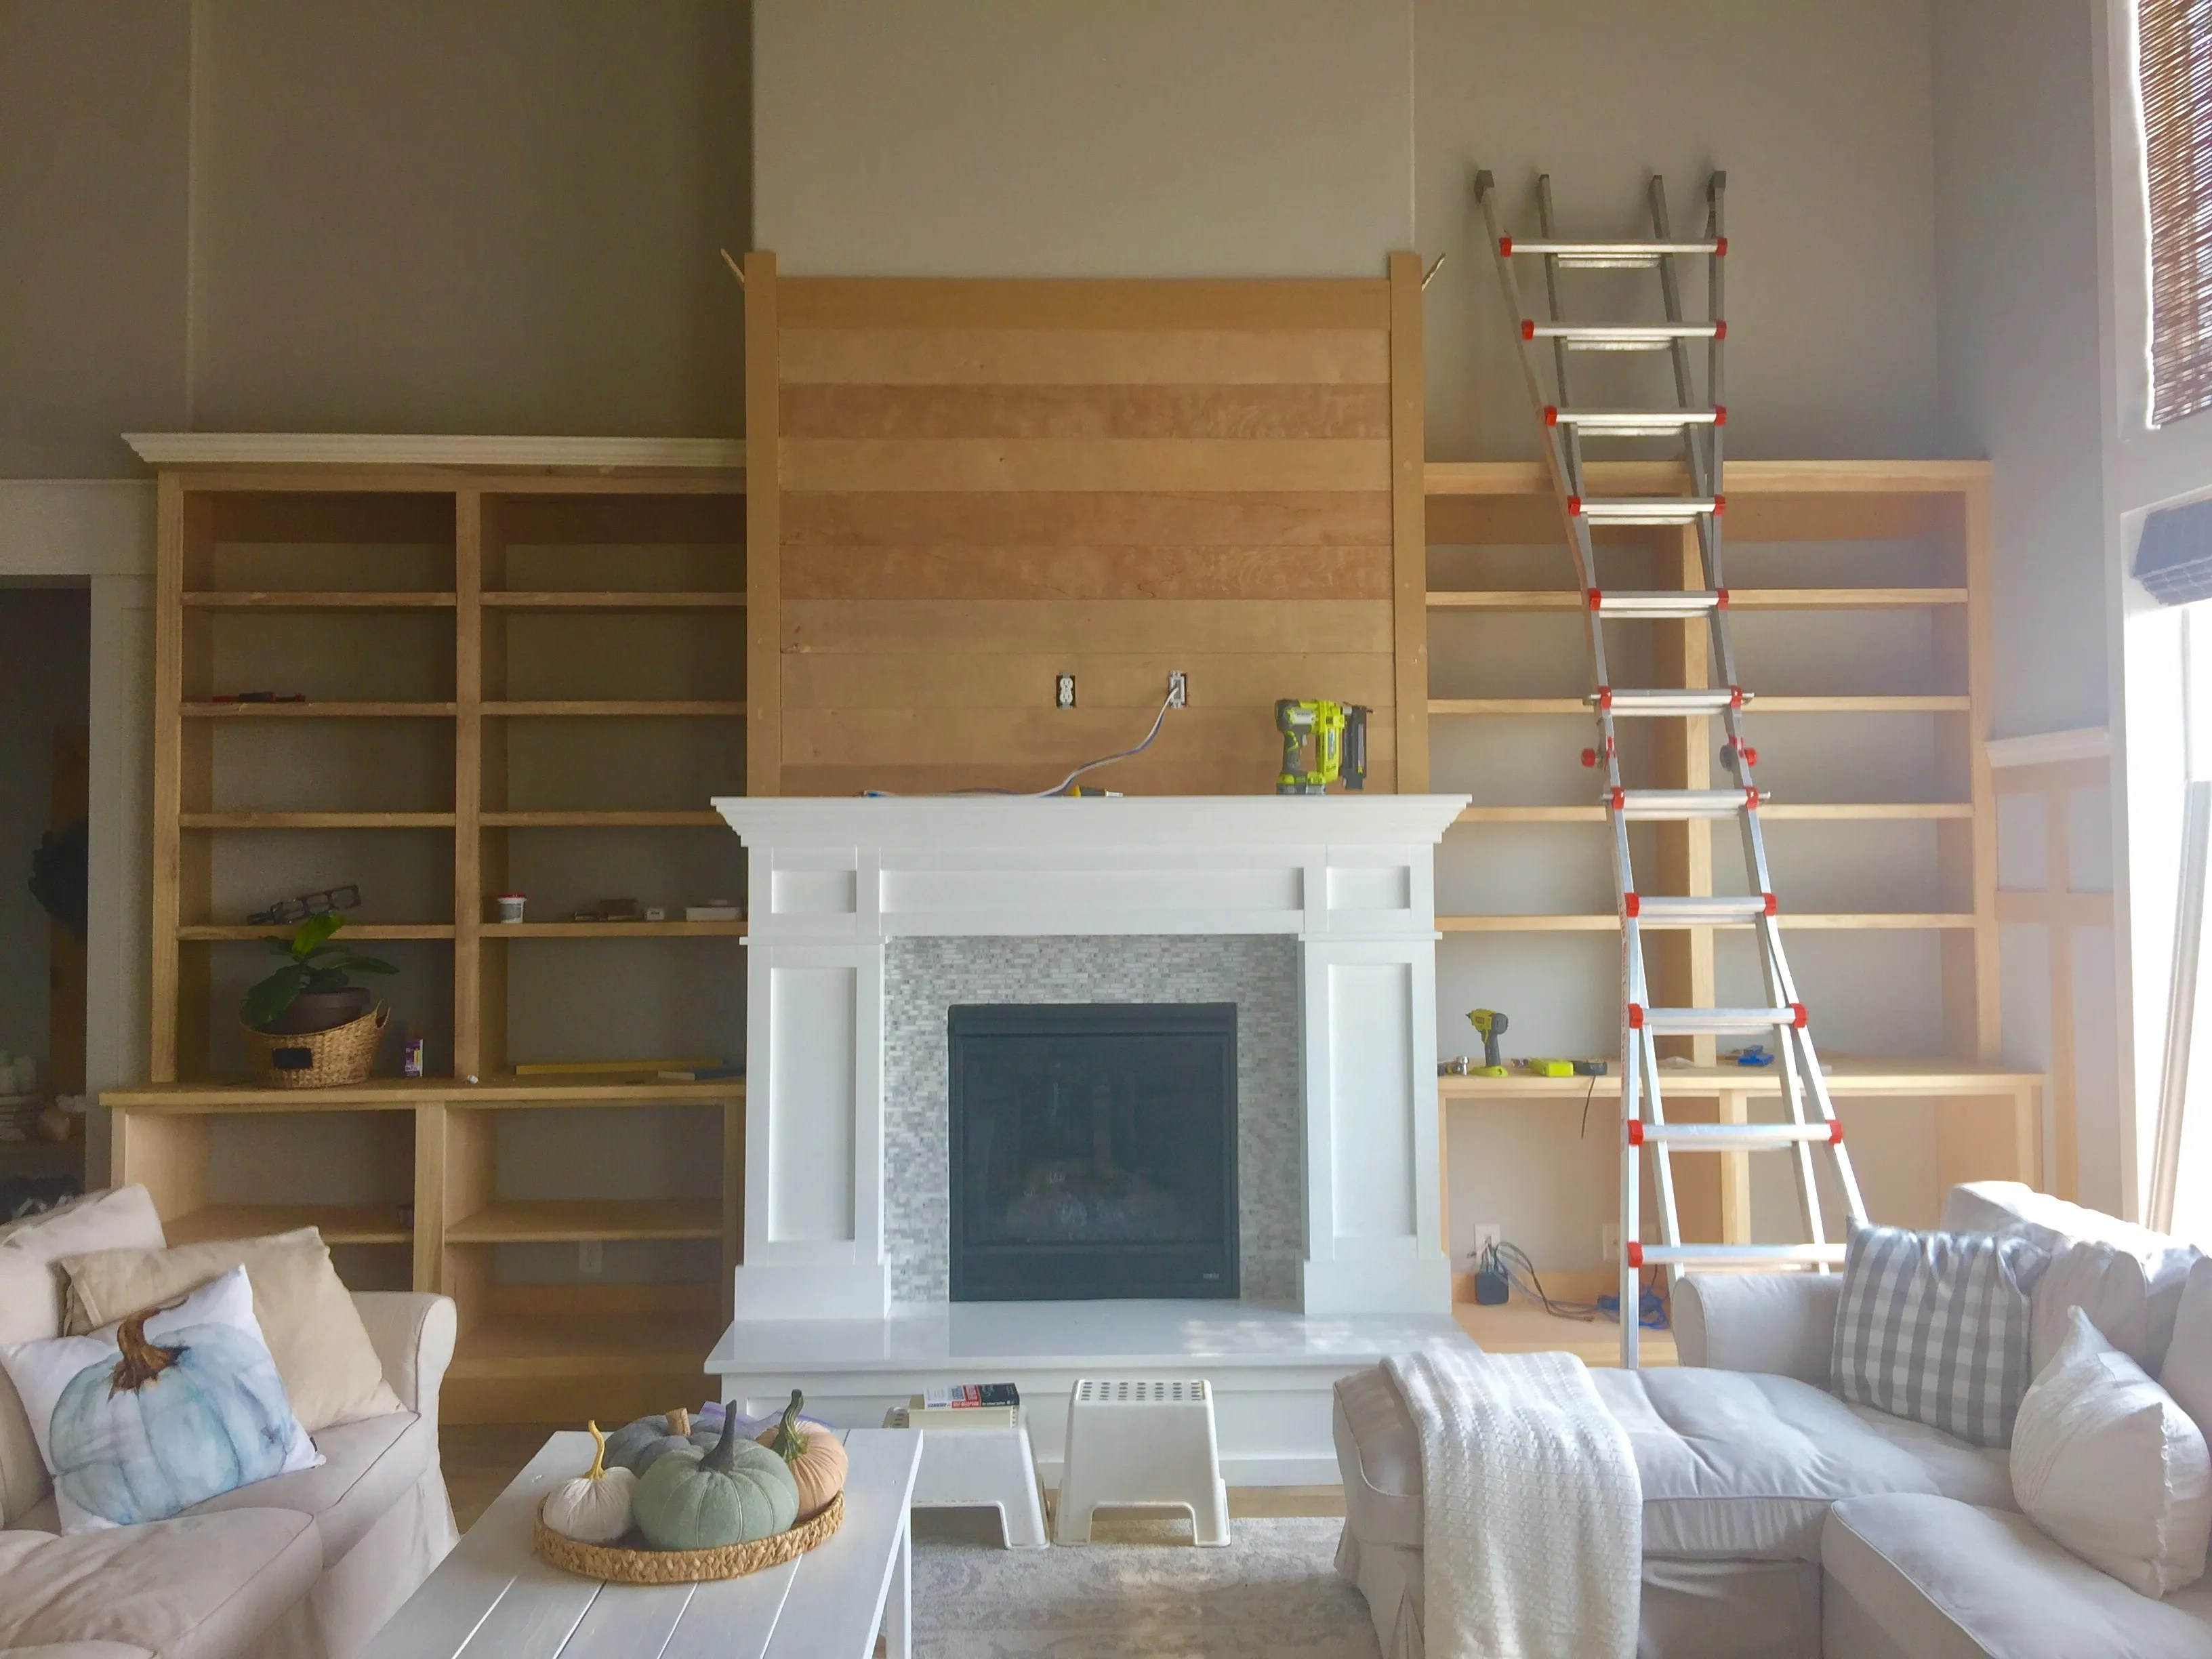 diy built in cabinets around fireplace